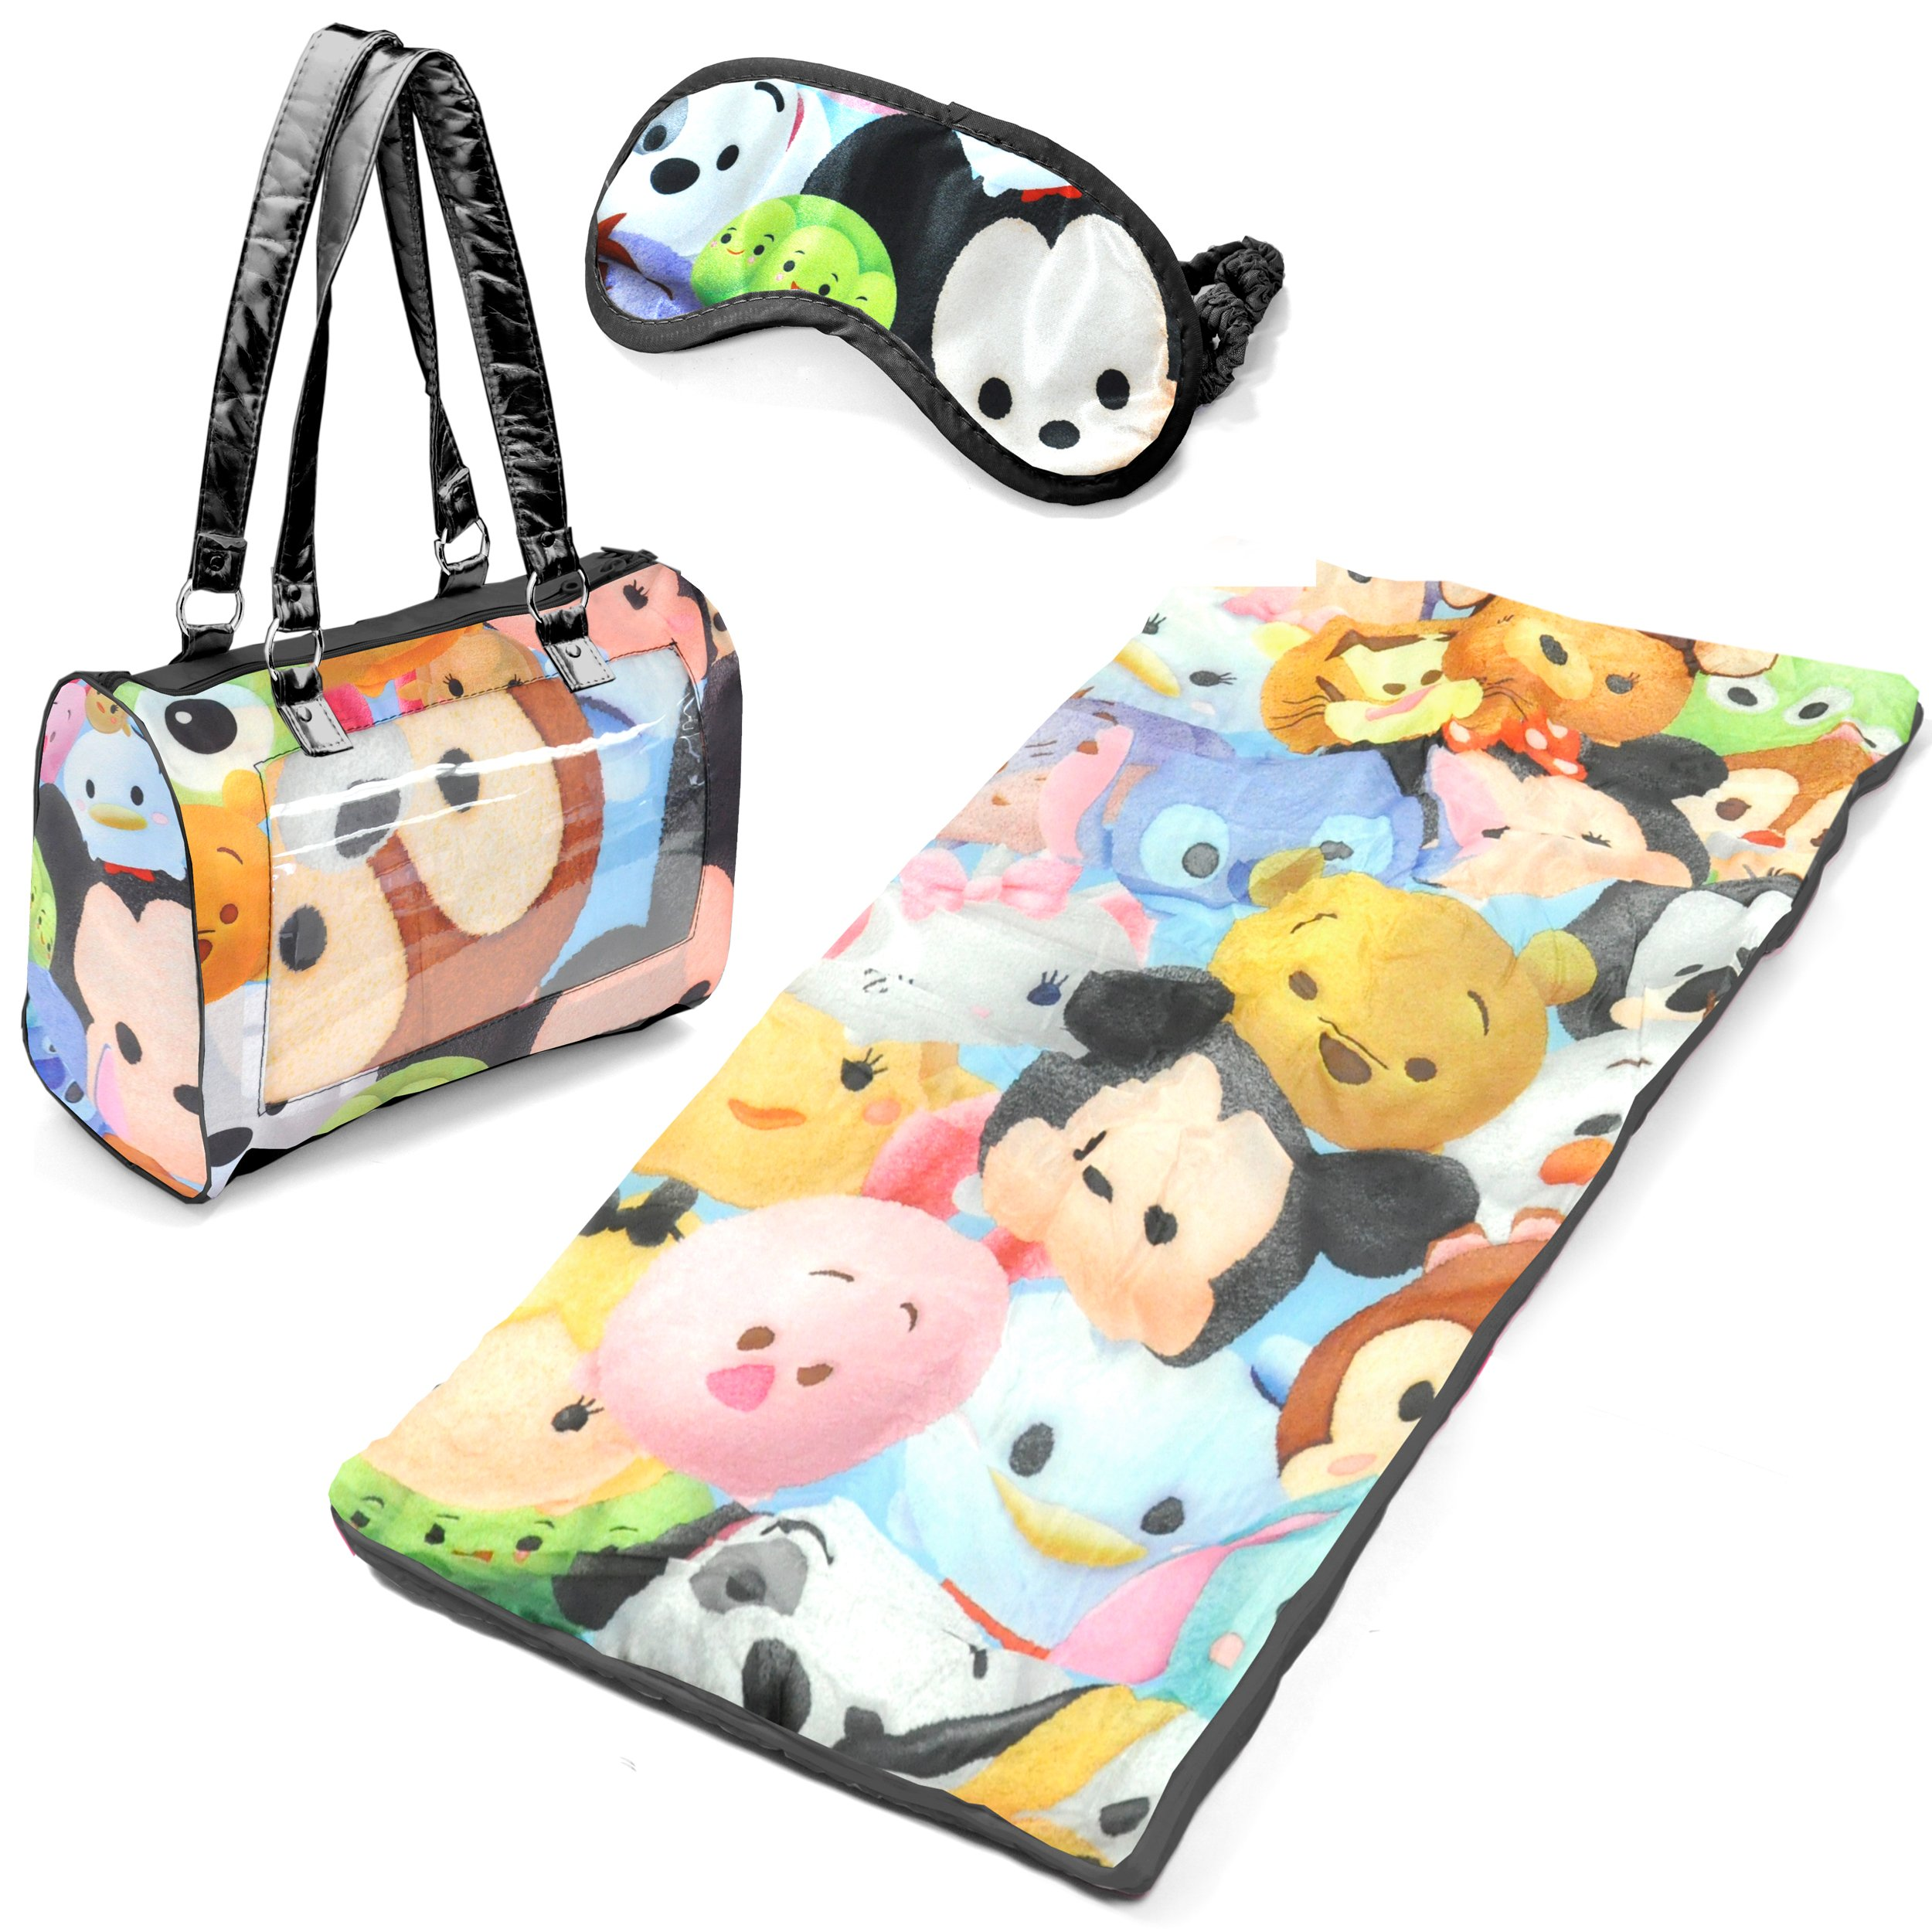 Disney Tsum Sleepover Purse